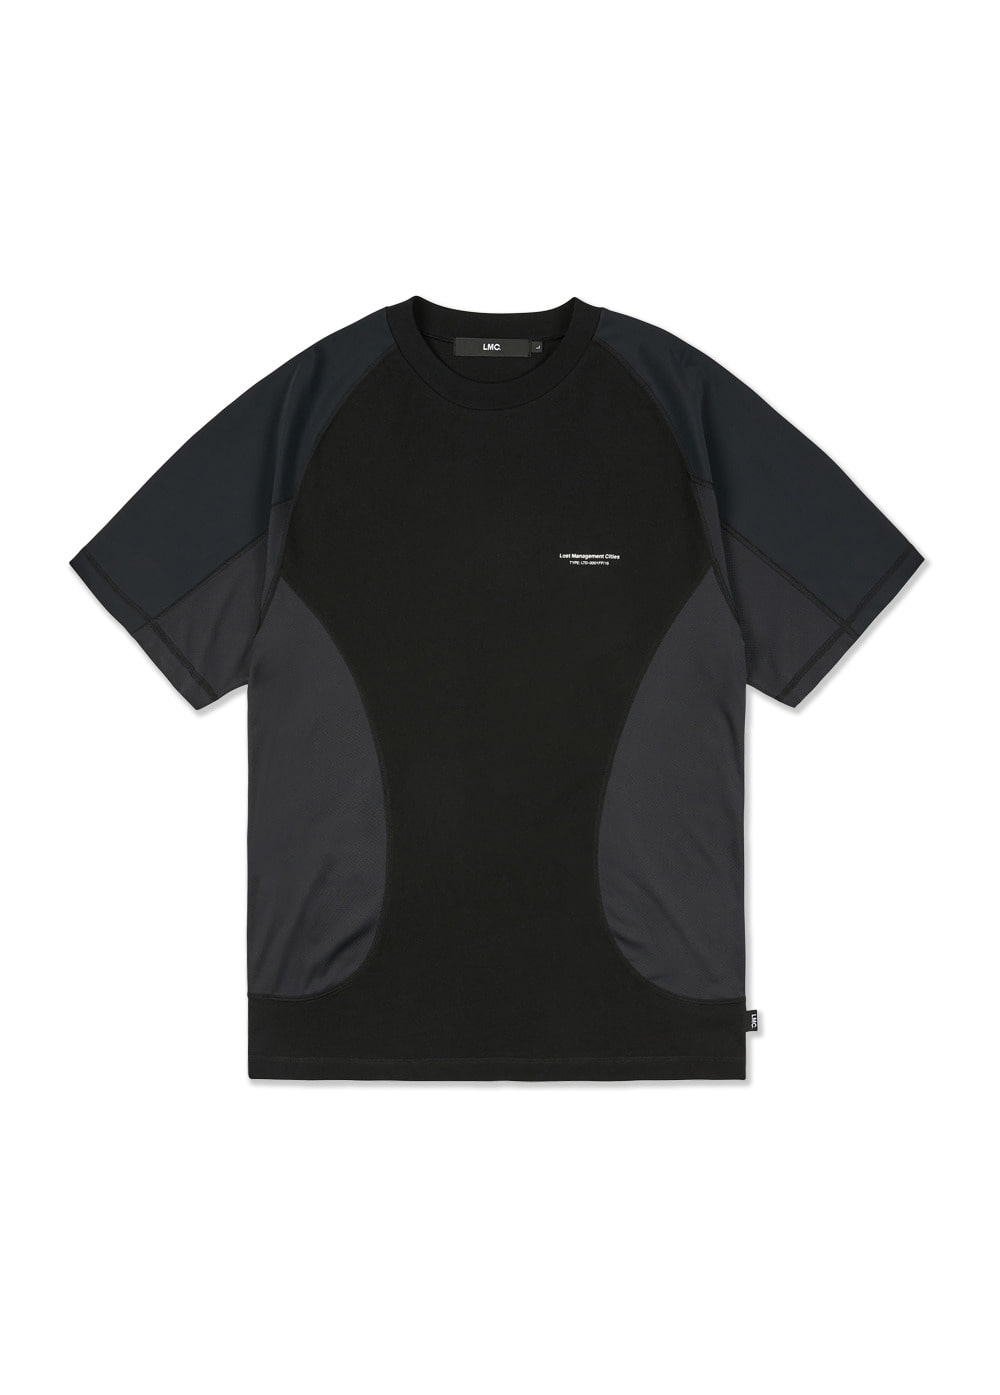 LMC CURVED SEAM JERSEY TEE black